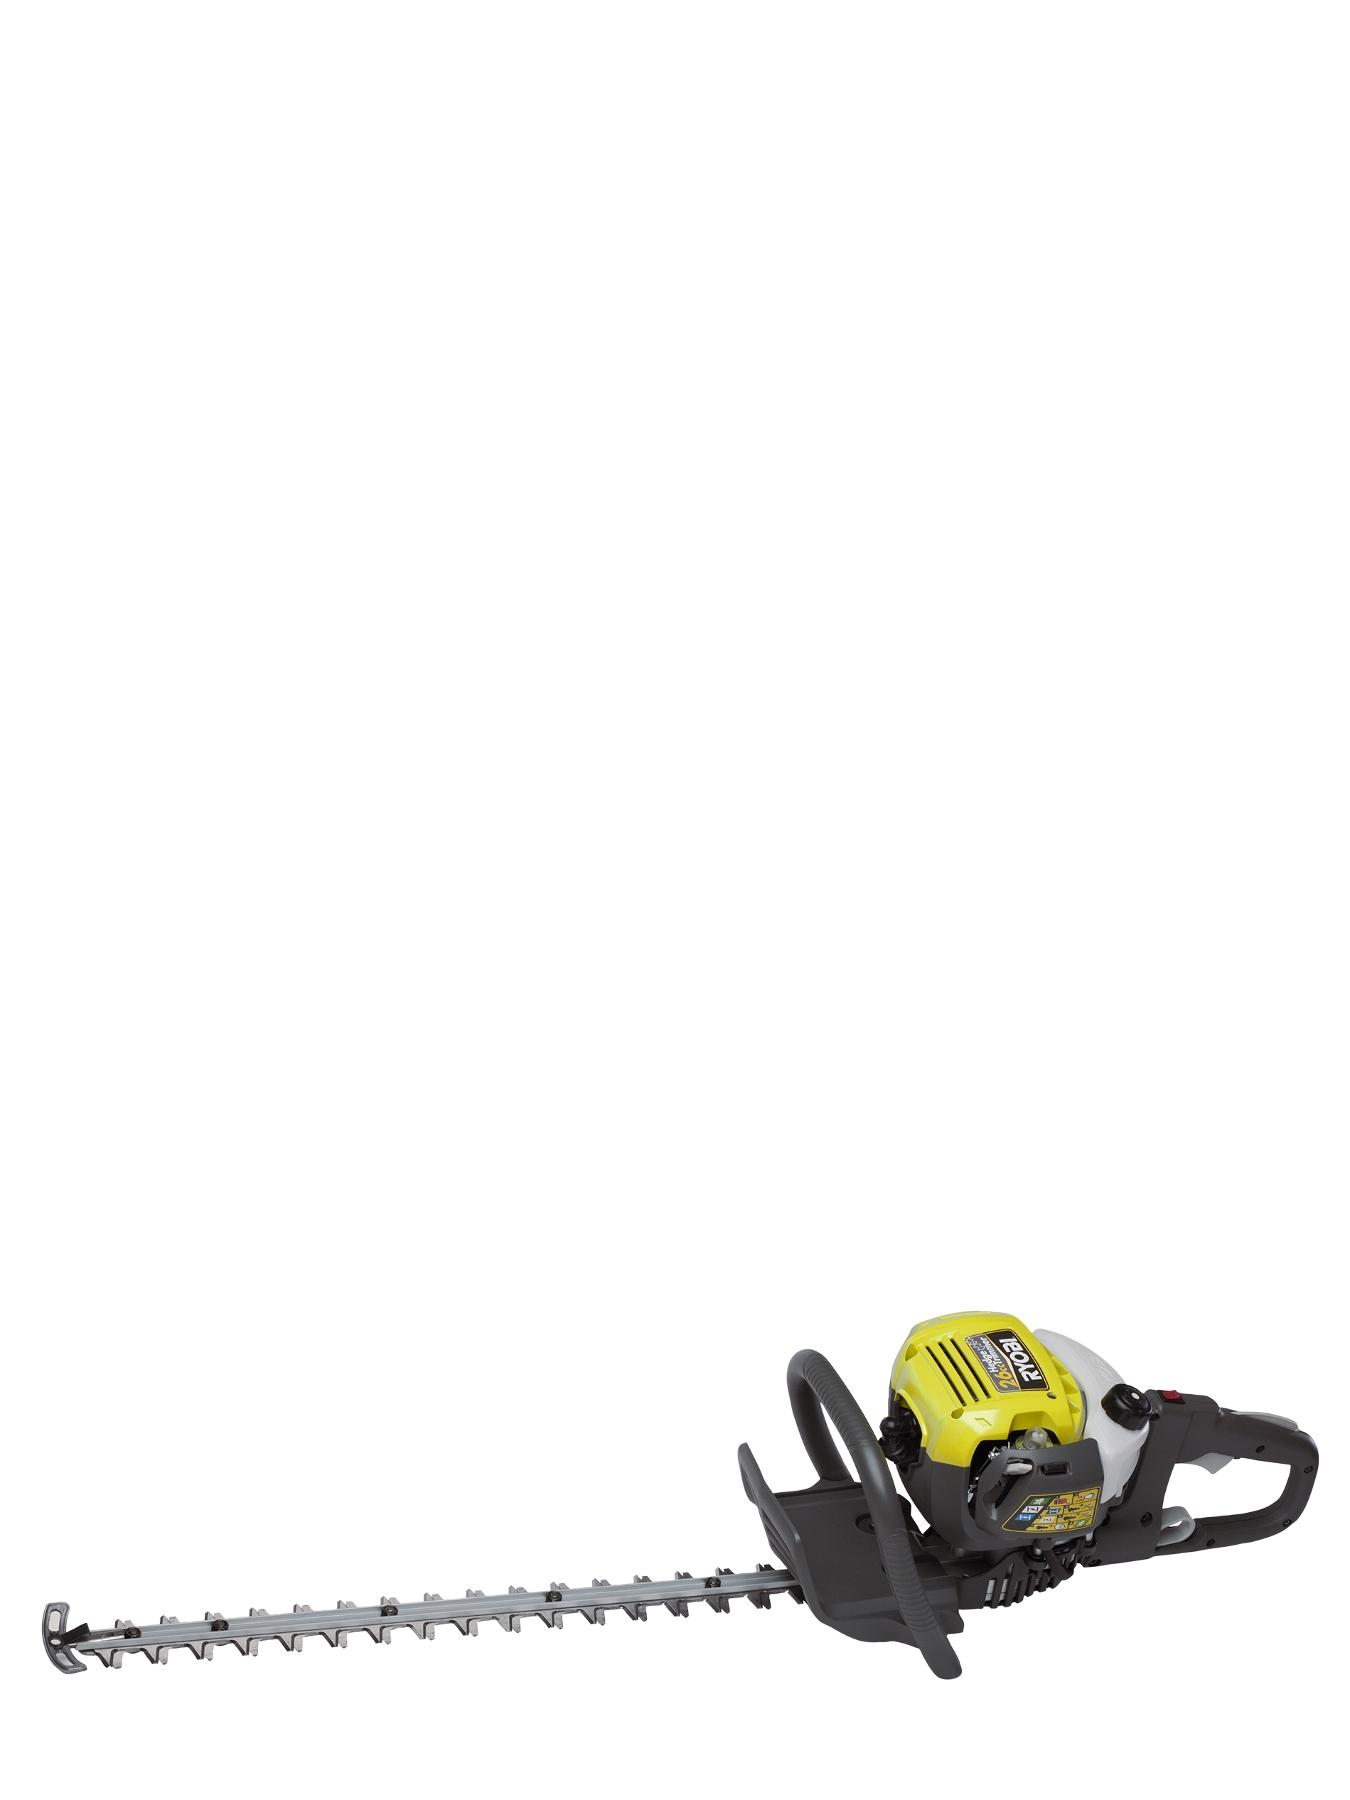 RHT2660R 26cc Petrol Hedge Trimmer